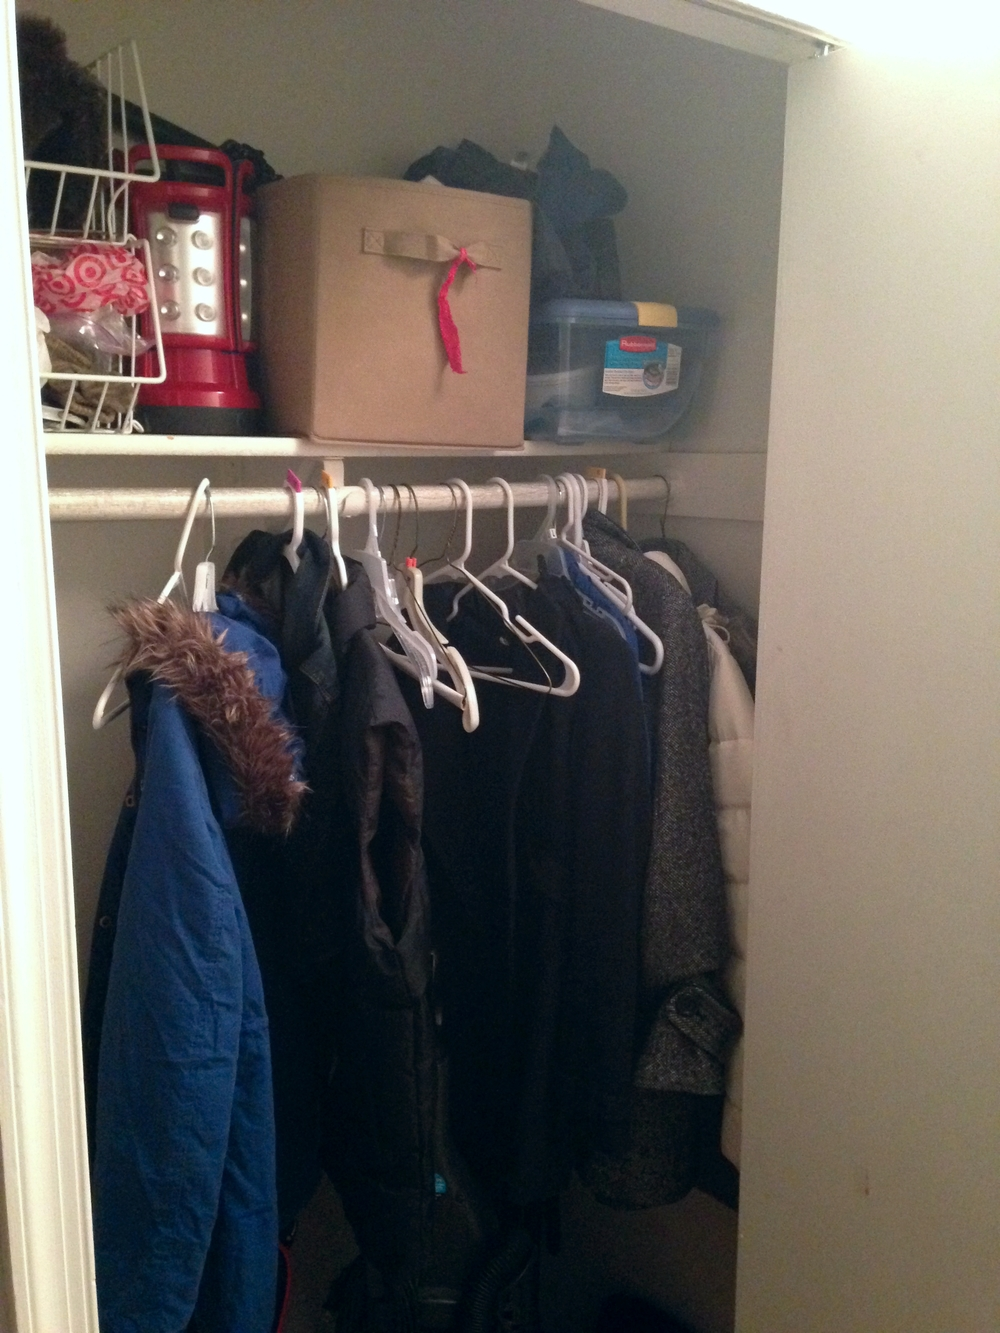 And here's the hall coat & vacuum closet. Right now our shoe storage is all over the place, and I want to do something about that...